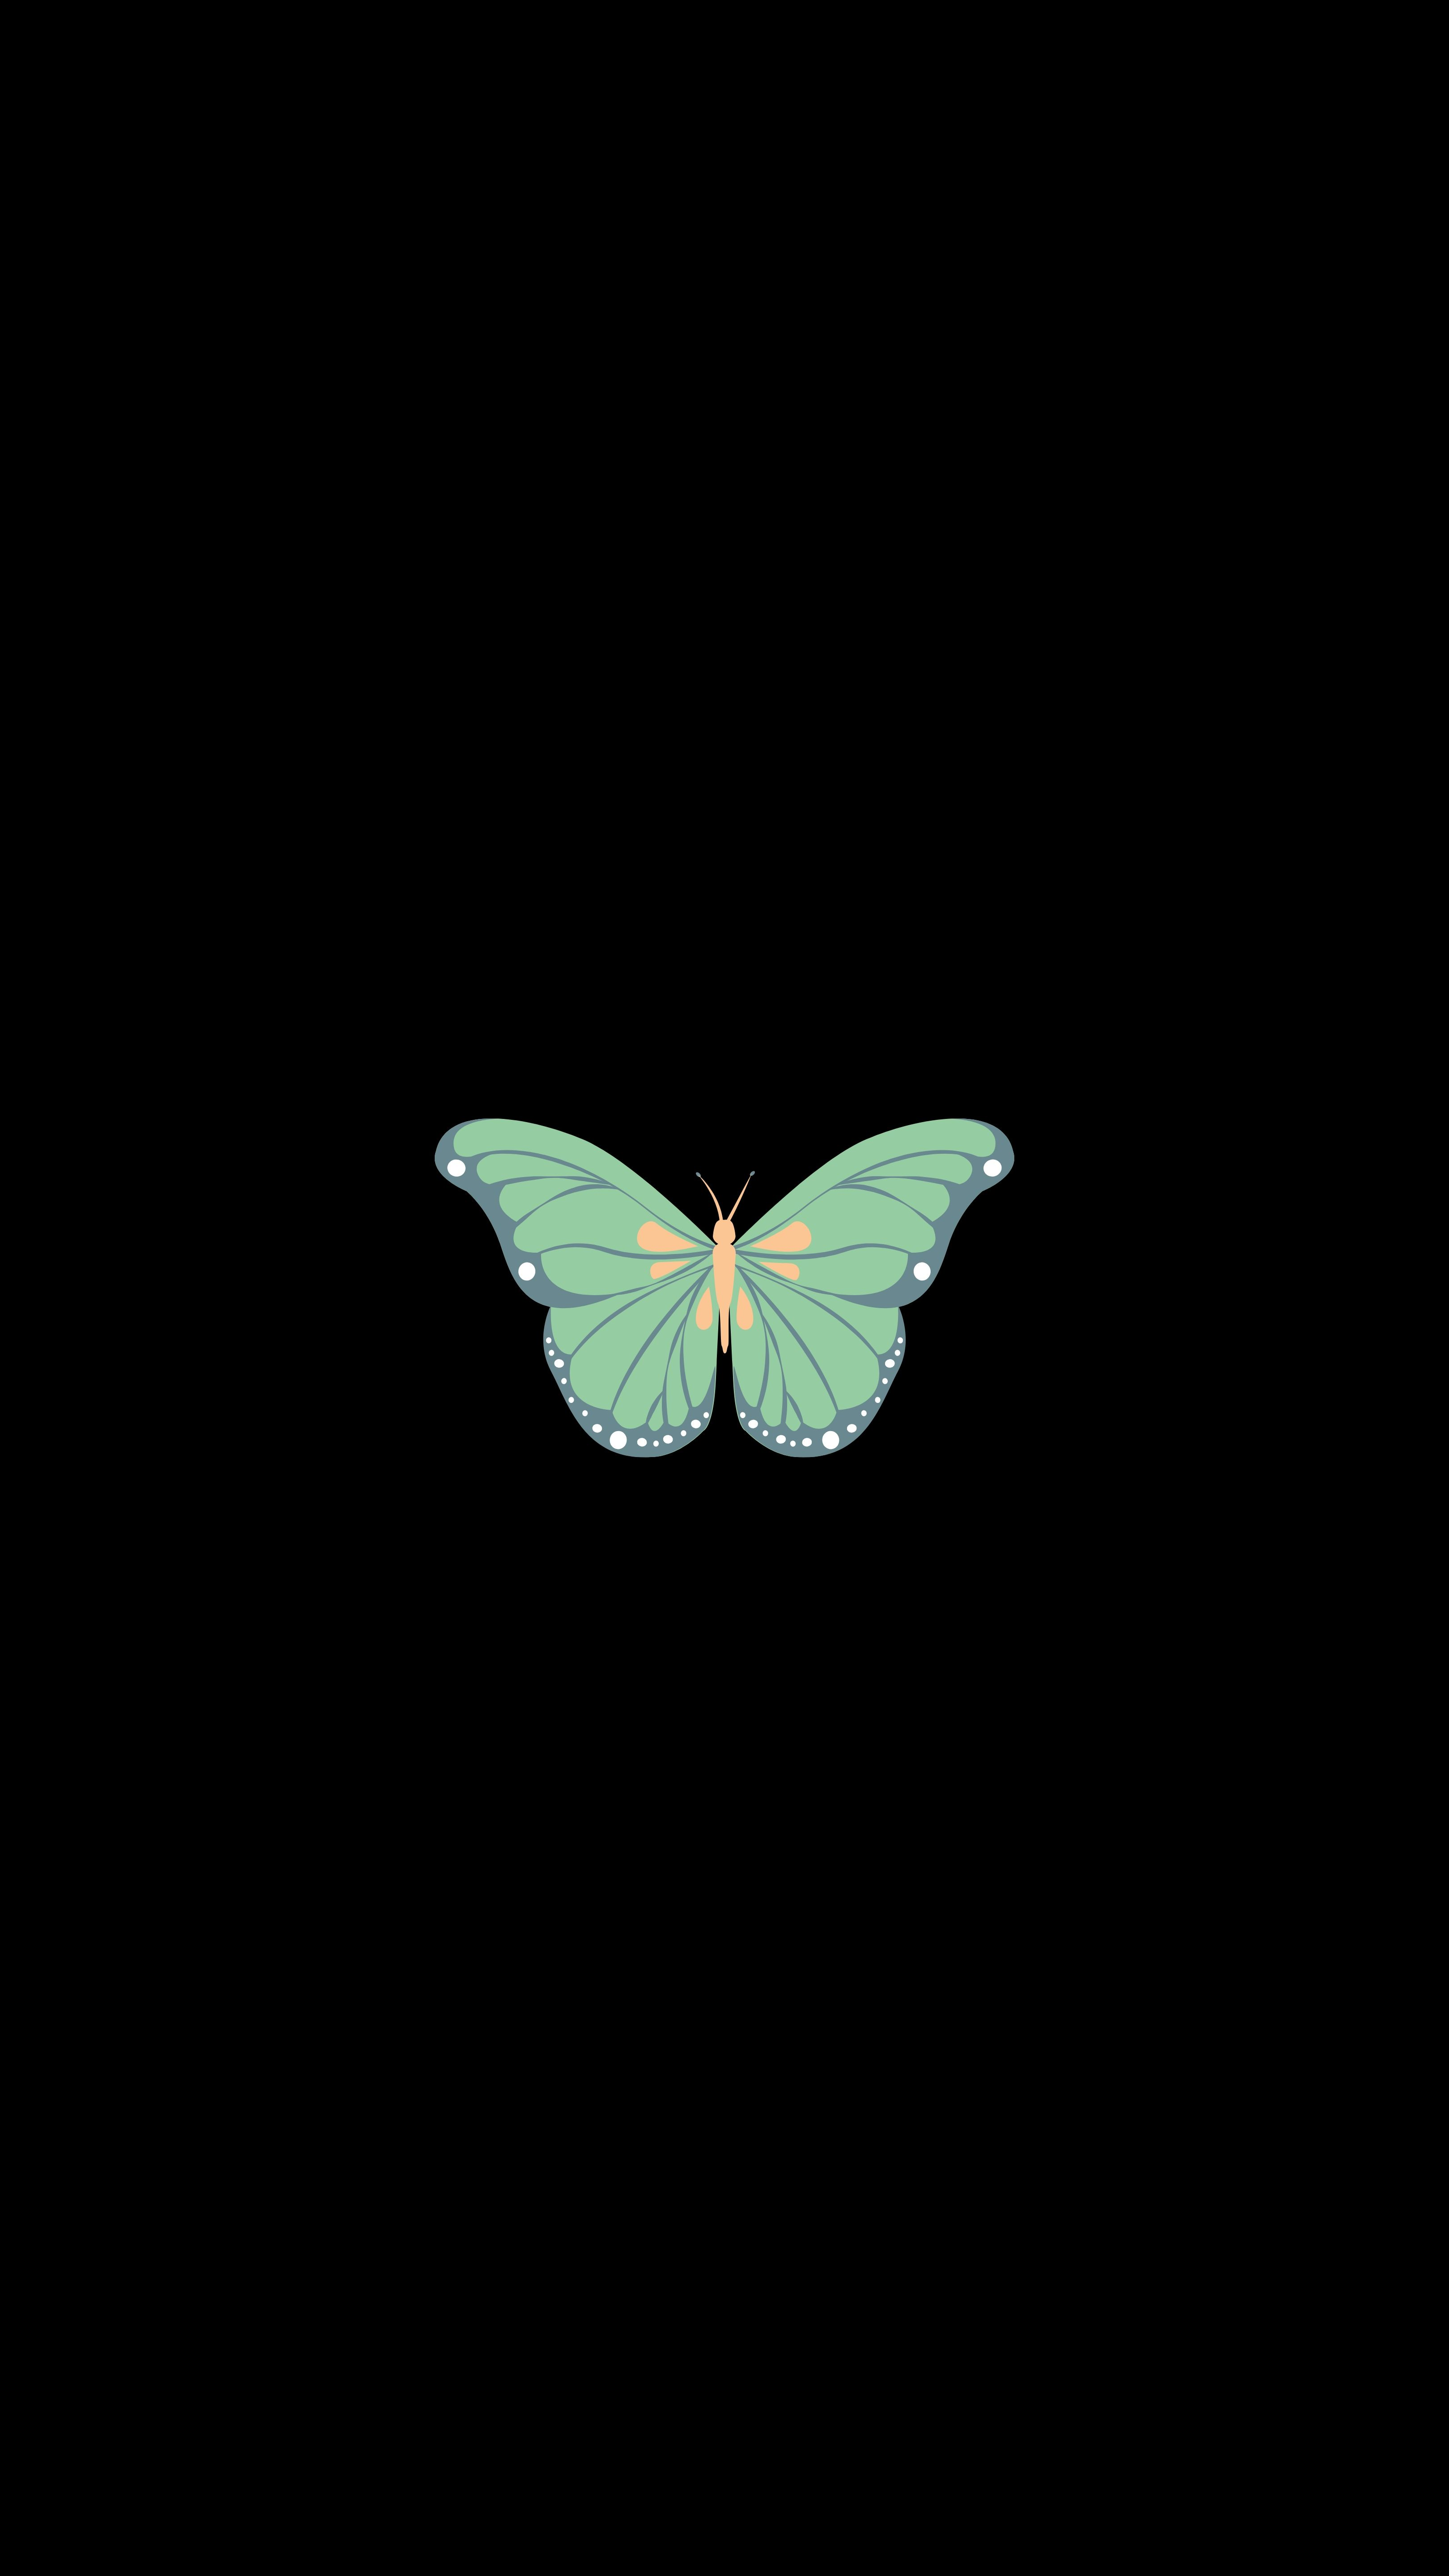 106673 download wallpaper Art, Vector, Minimalism, Butterfly screensavers and pictures for free